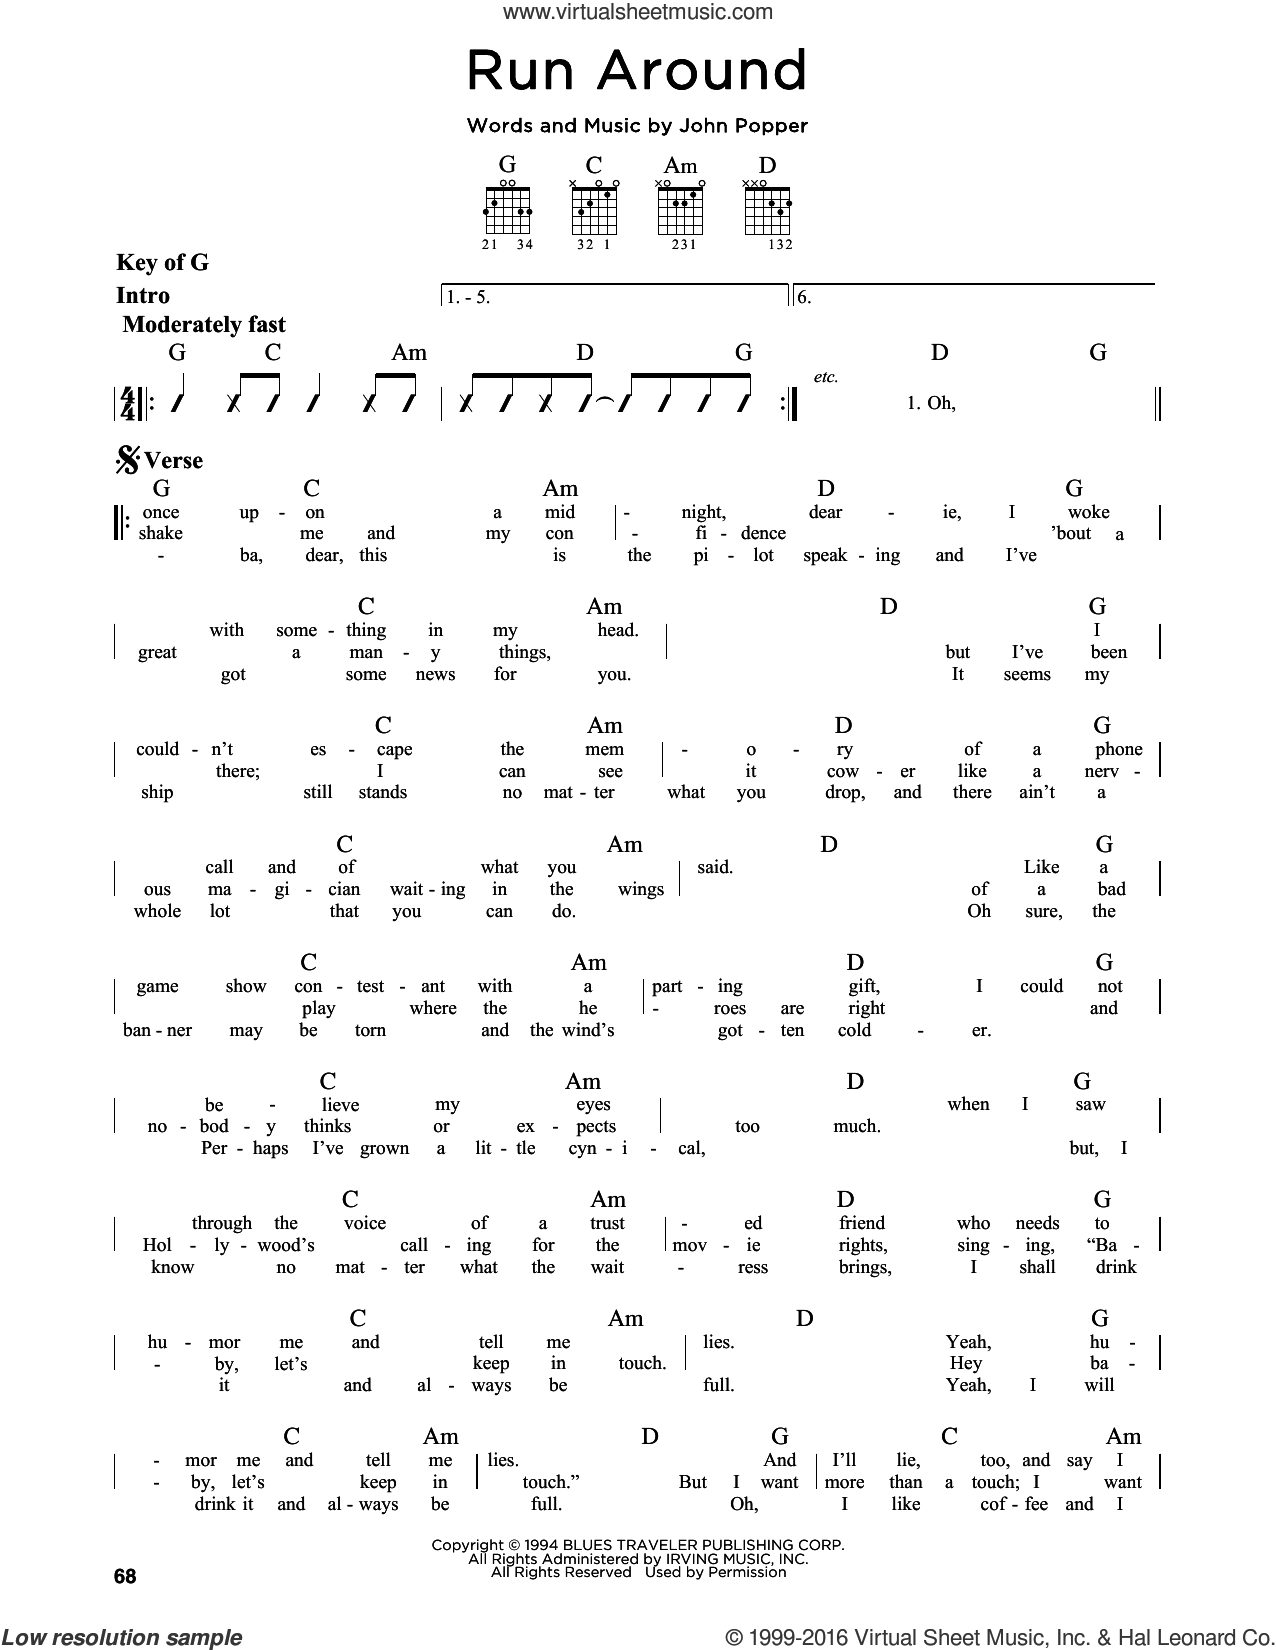 Run Around sheet music for guitar solo (lead sheet) by John Popper